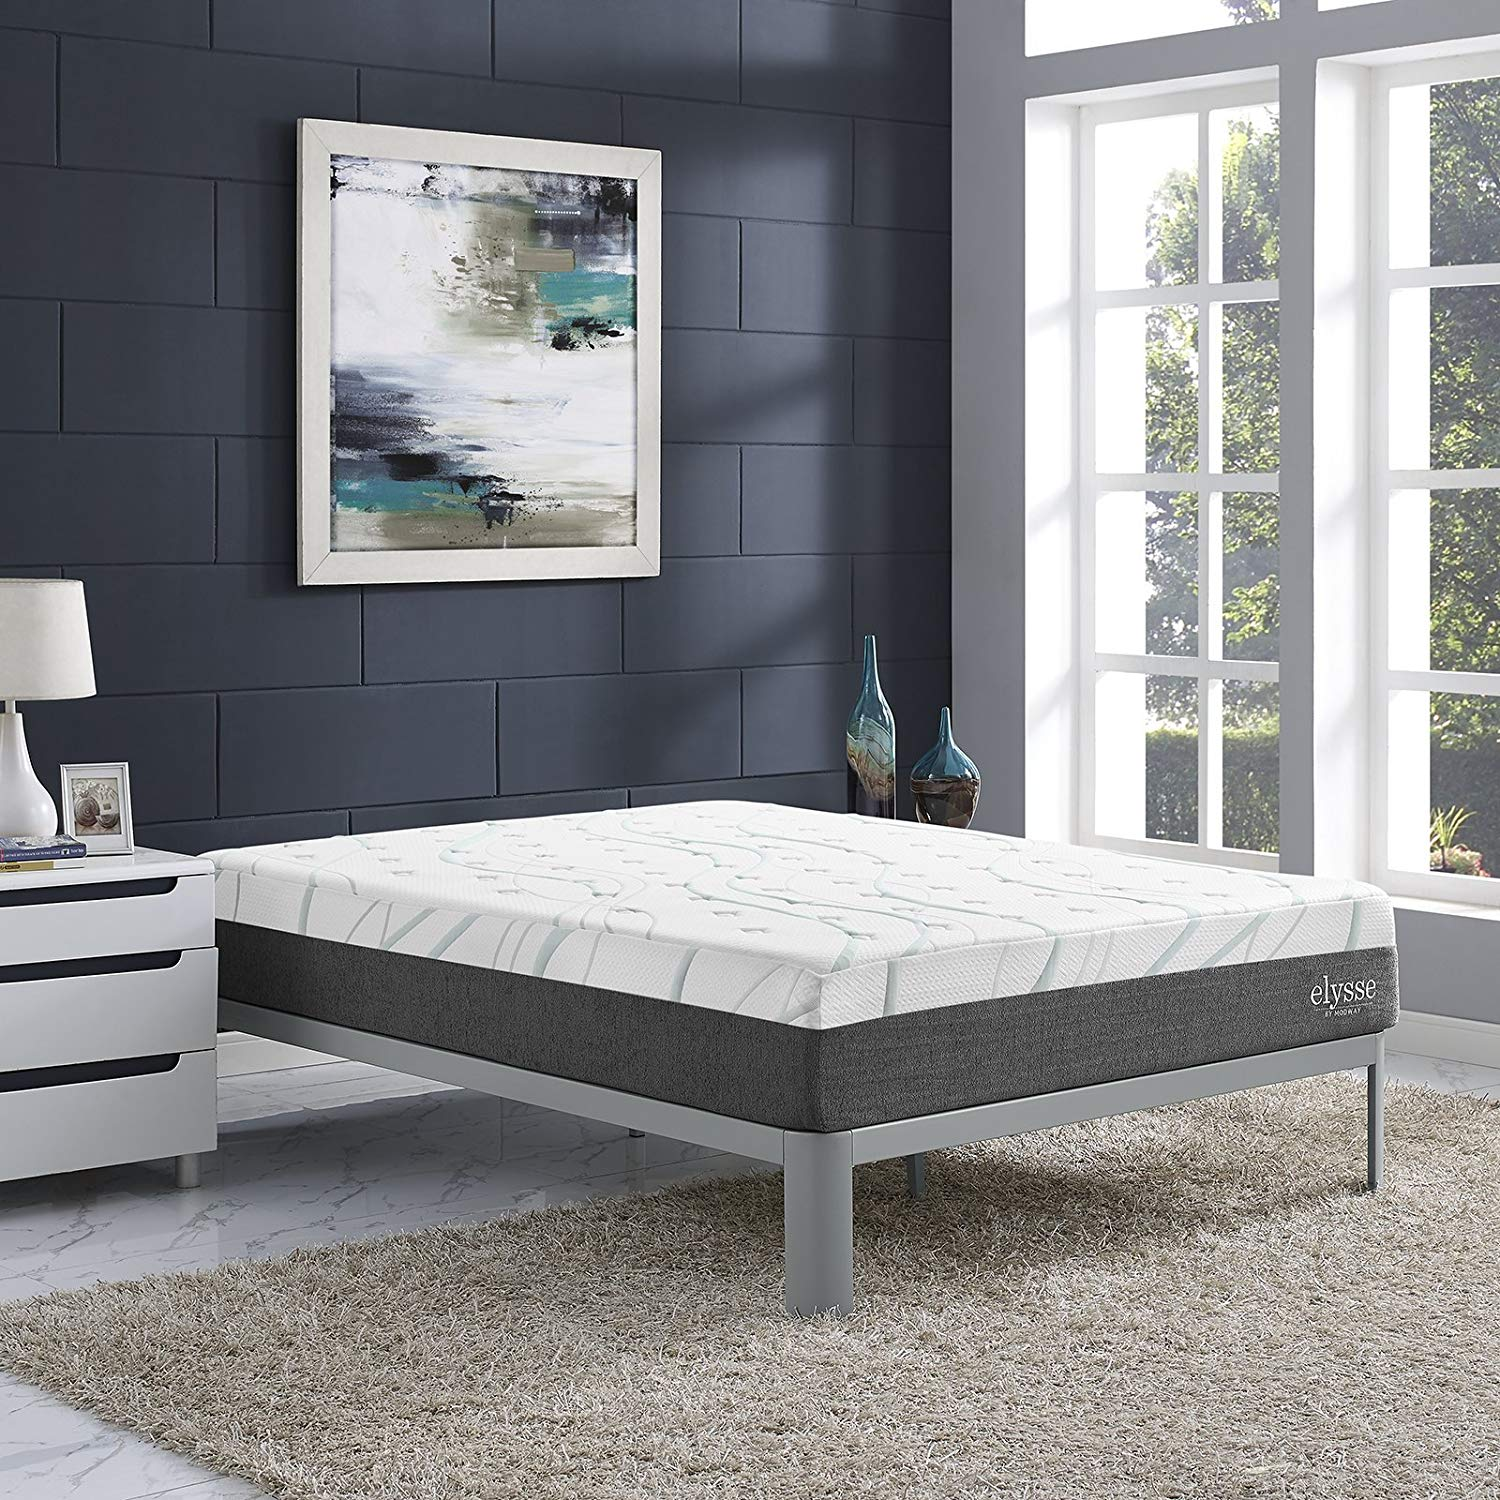 Modway best hybrid mattress reviews by www.snoremagazine.com